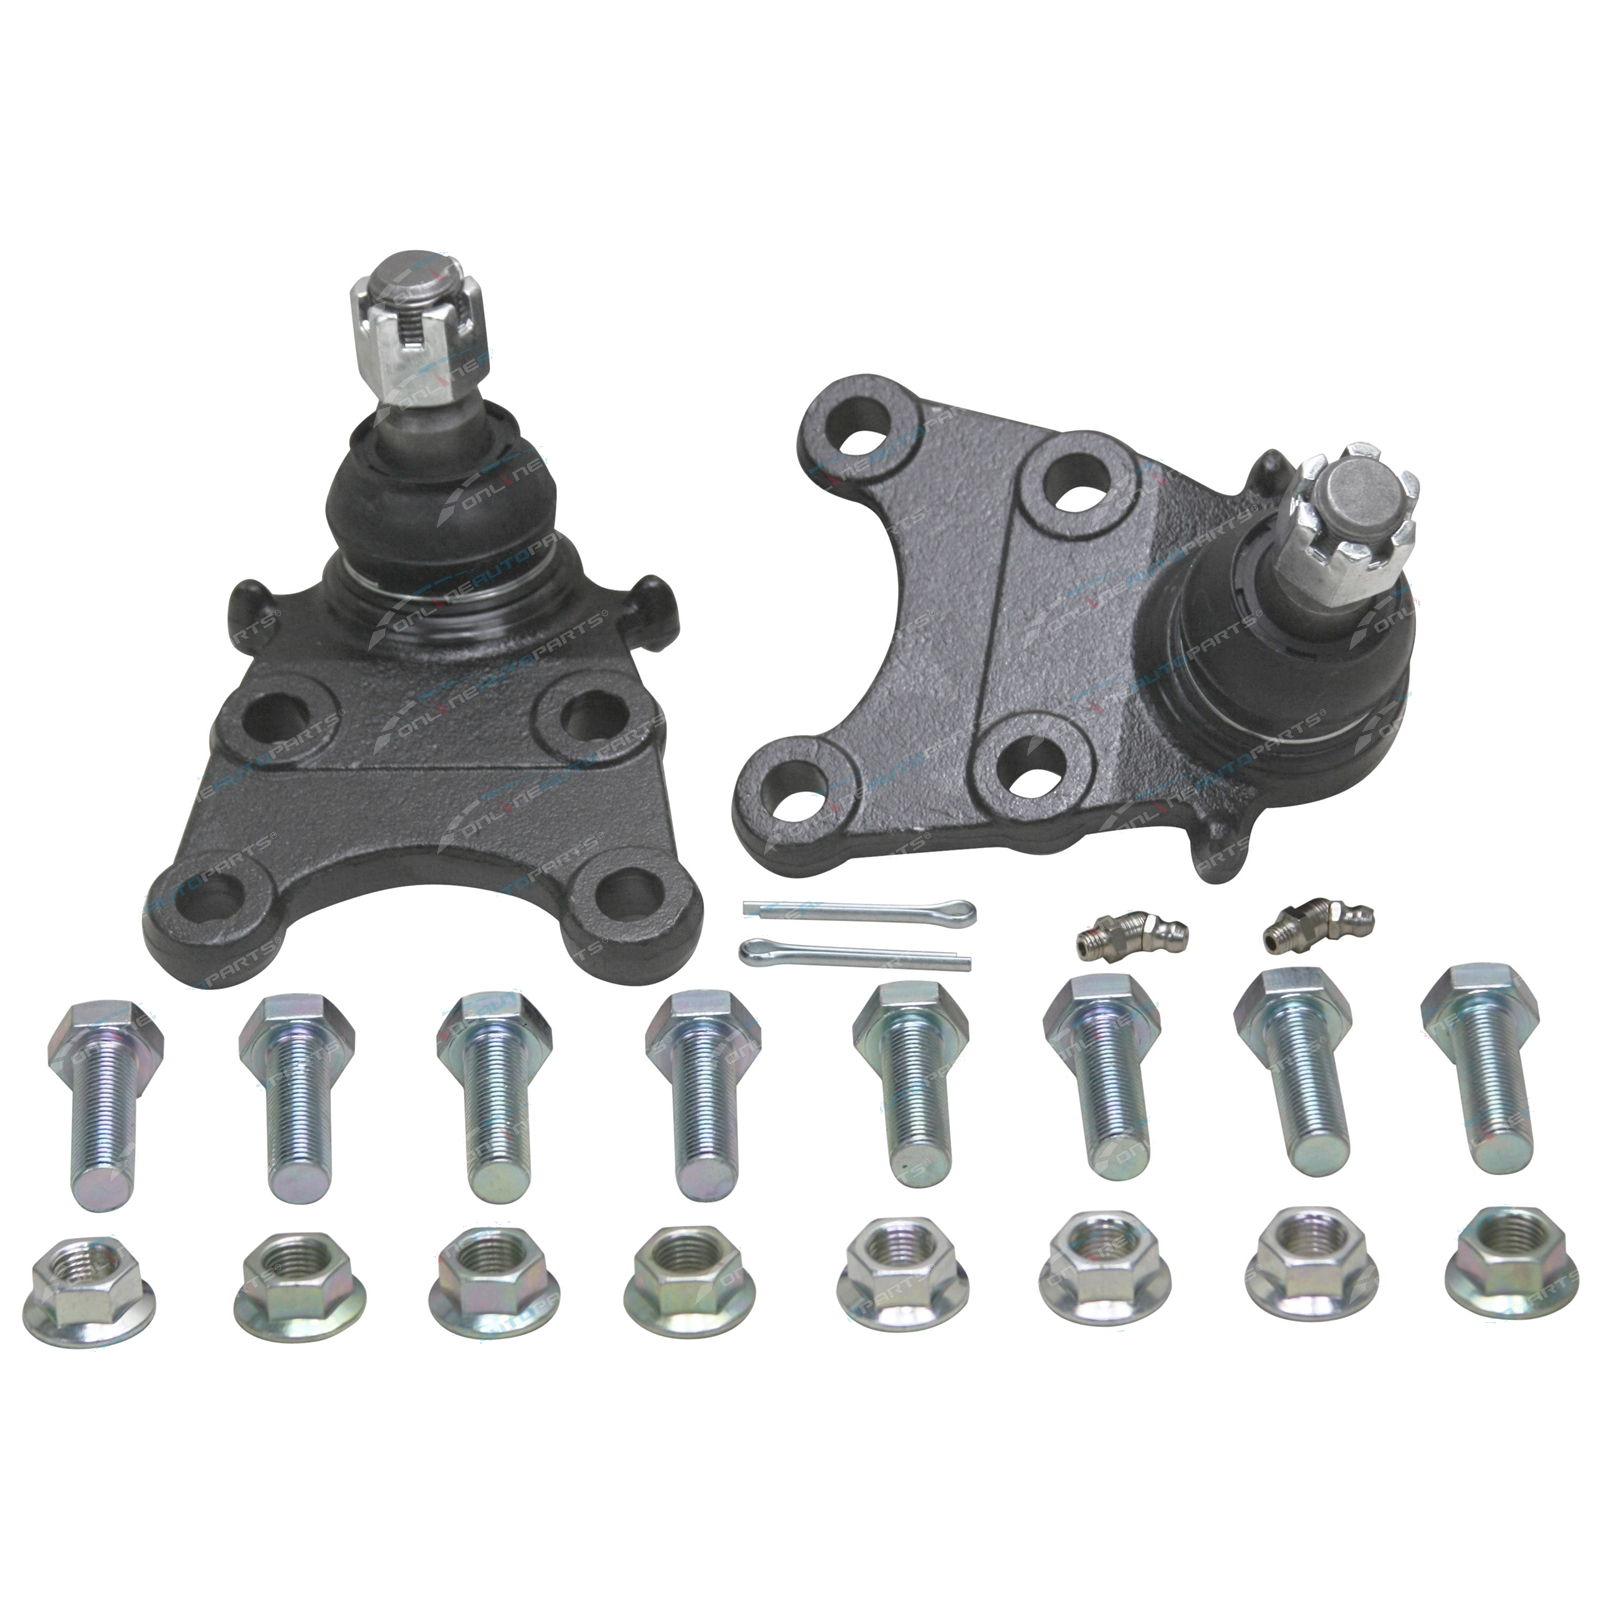 2 Lower Ball Joints suits Great Wall V240 X240 V200 CC K2 ...